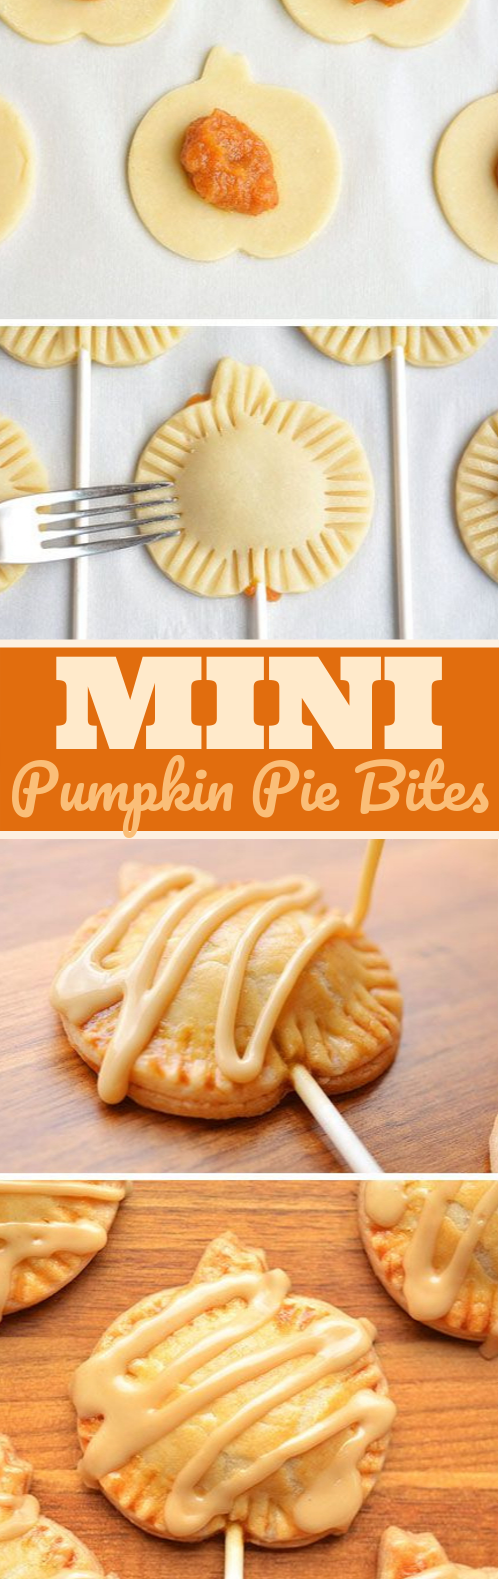 Mini Pumpkin Pie Pops #desserts #pumpkin